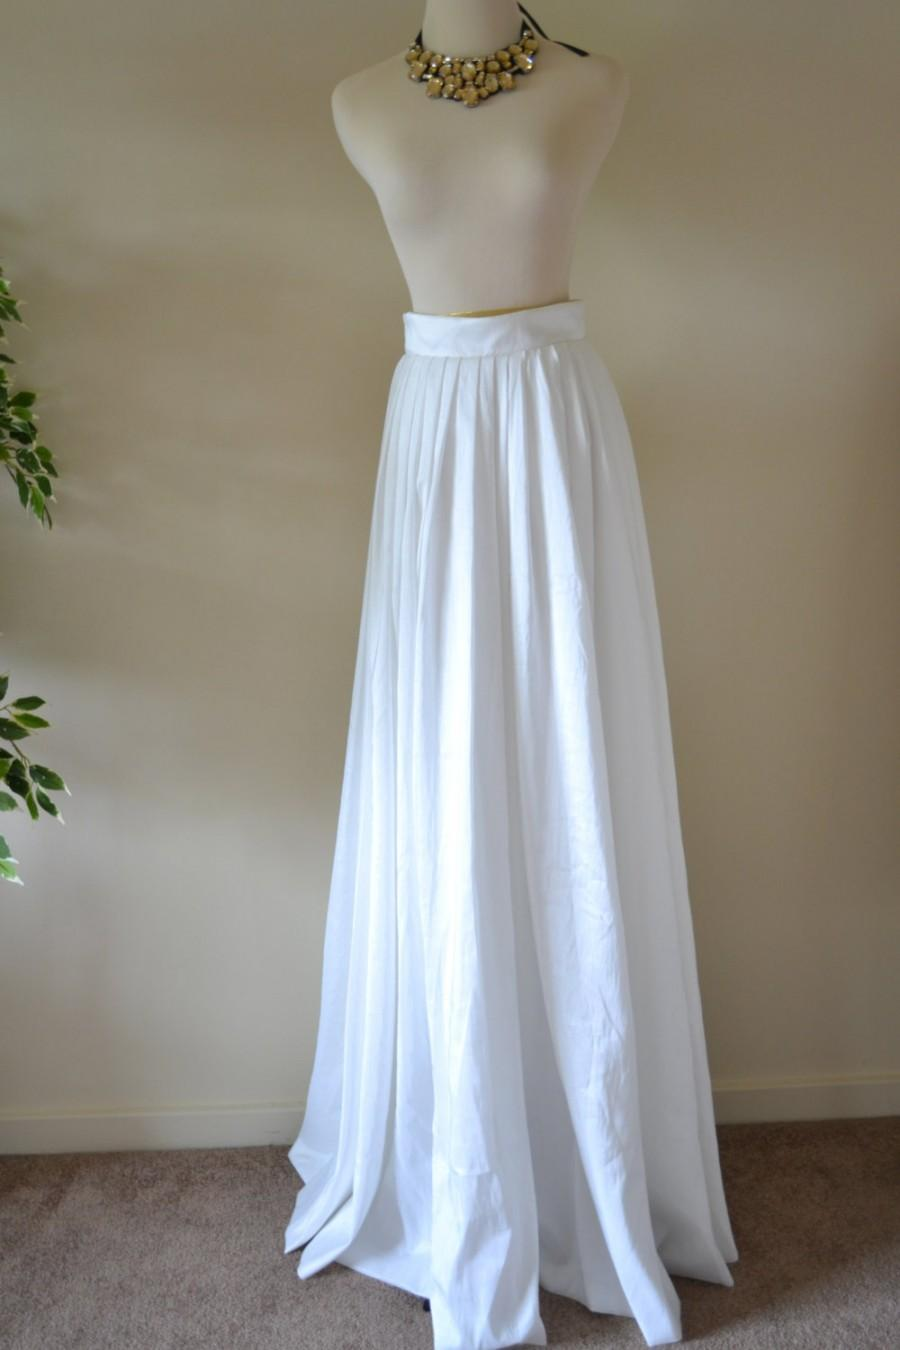 Custom-made \'Tia\' Skirt Formal Bridal Separates Full Ballgown Silk ...